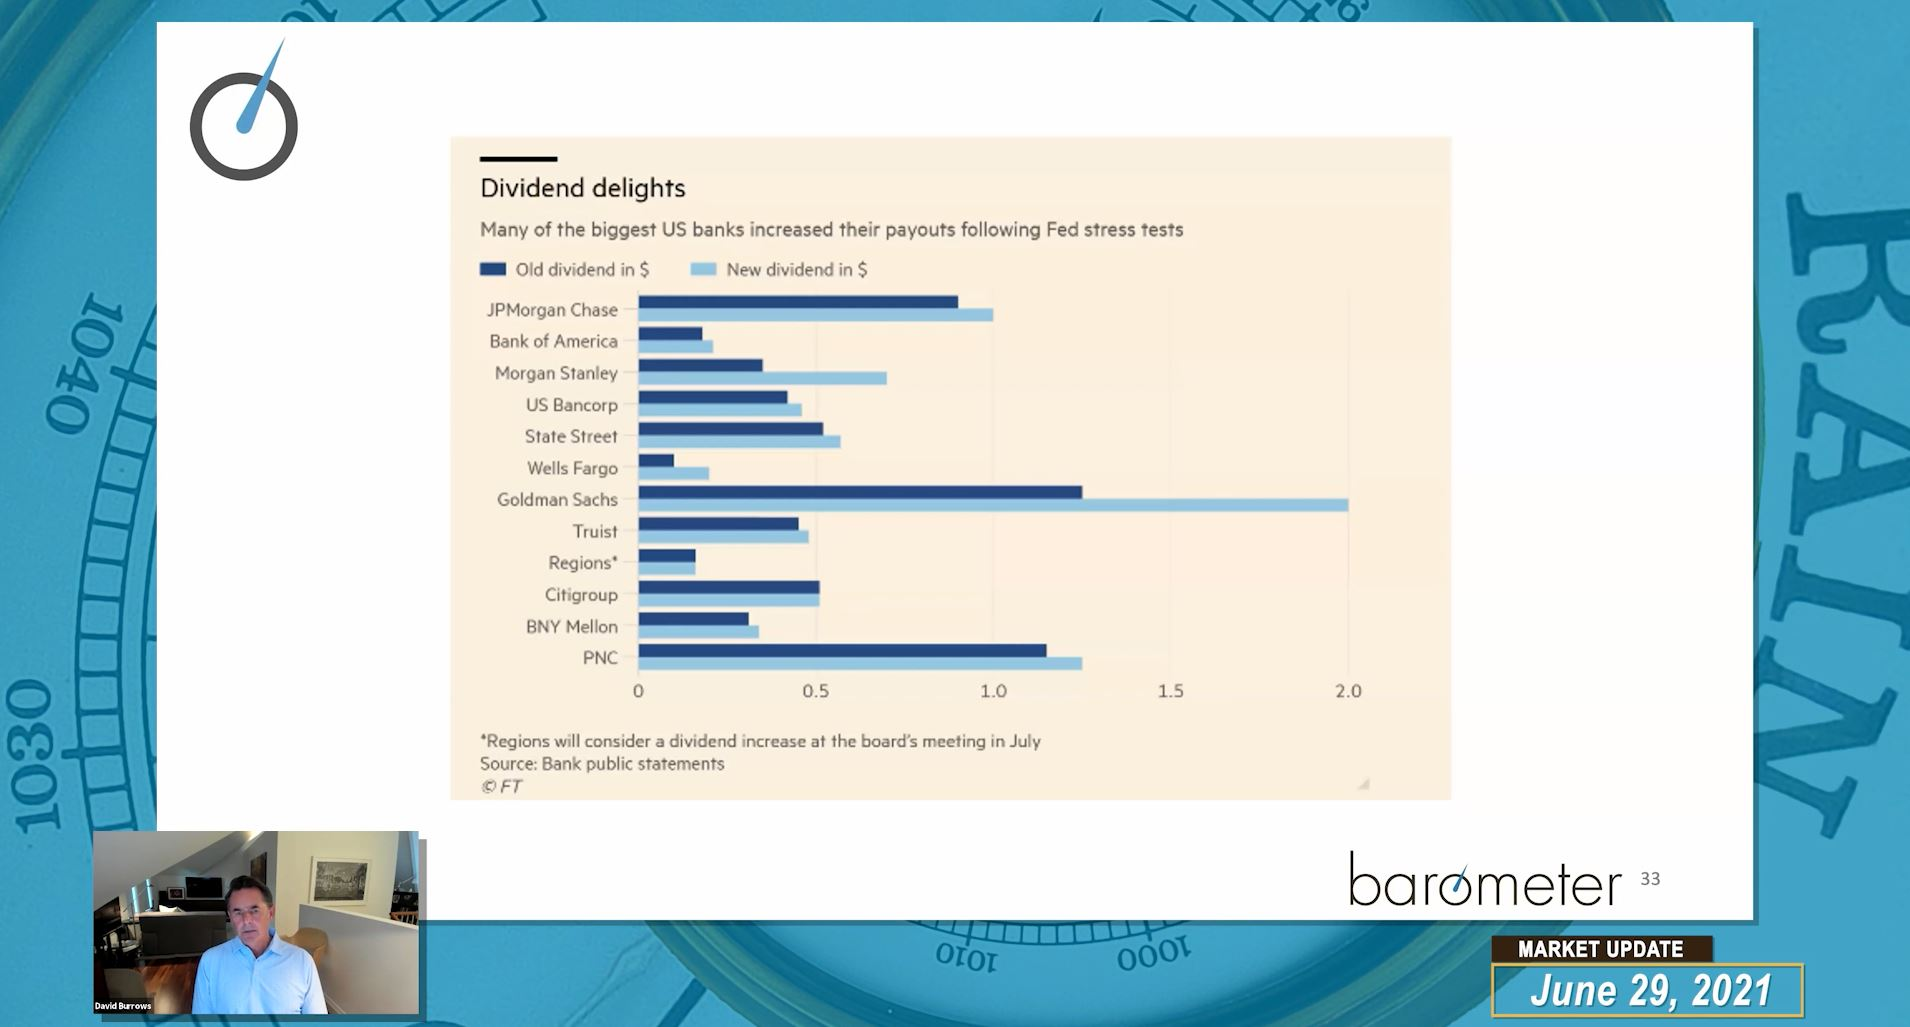 Weekly Barometer Readings (Video) – David Burrows And Jim Schetakis Discuss Macro Economic Data Points, Increasing Dividends and Share Buy-Backs From US Banks, The Bipartisan Infrastructure Deal and Market Leadership